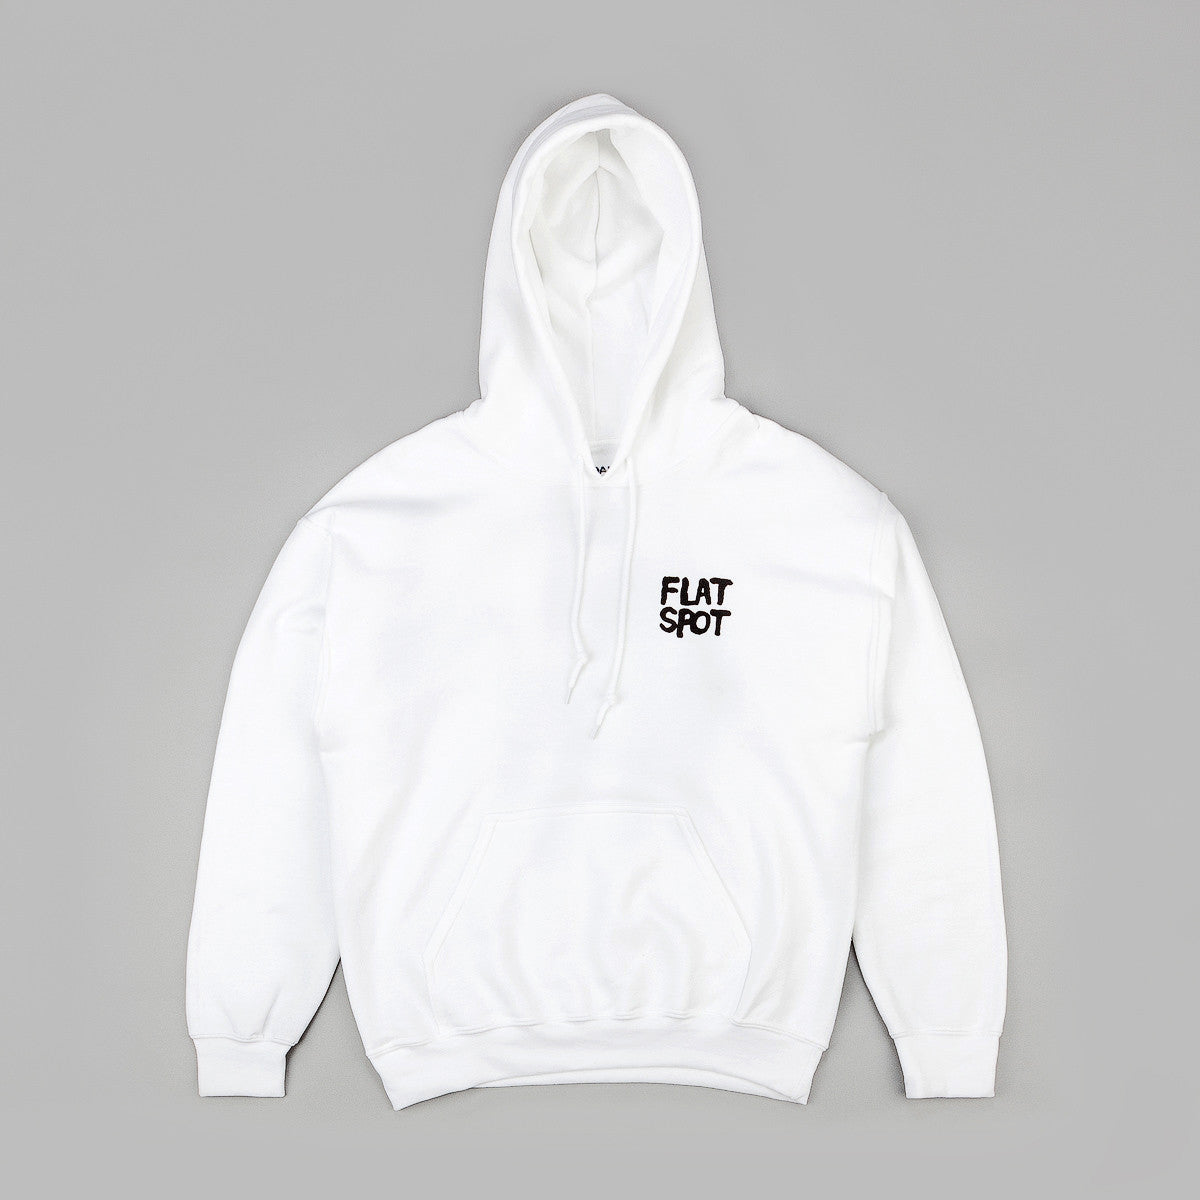 Flatspot Curb Sniffer Hooded Sweatshirt - White / Black